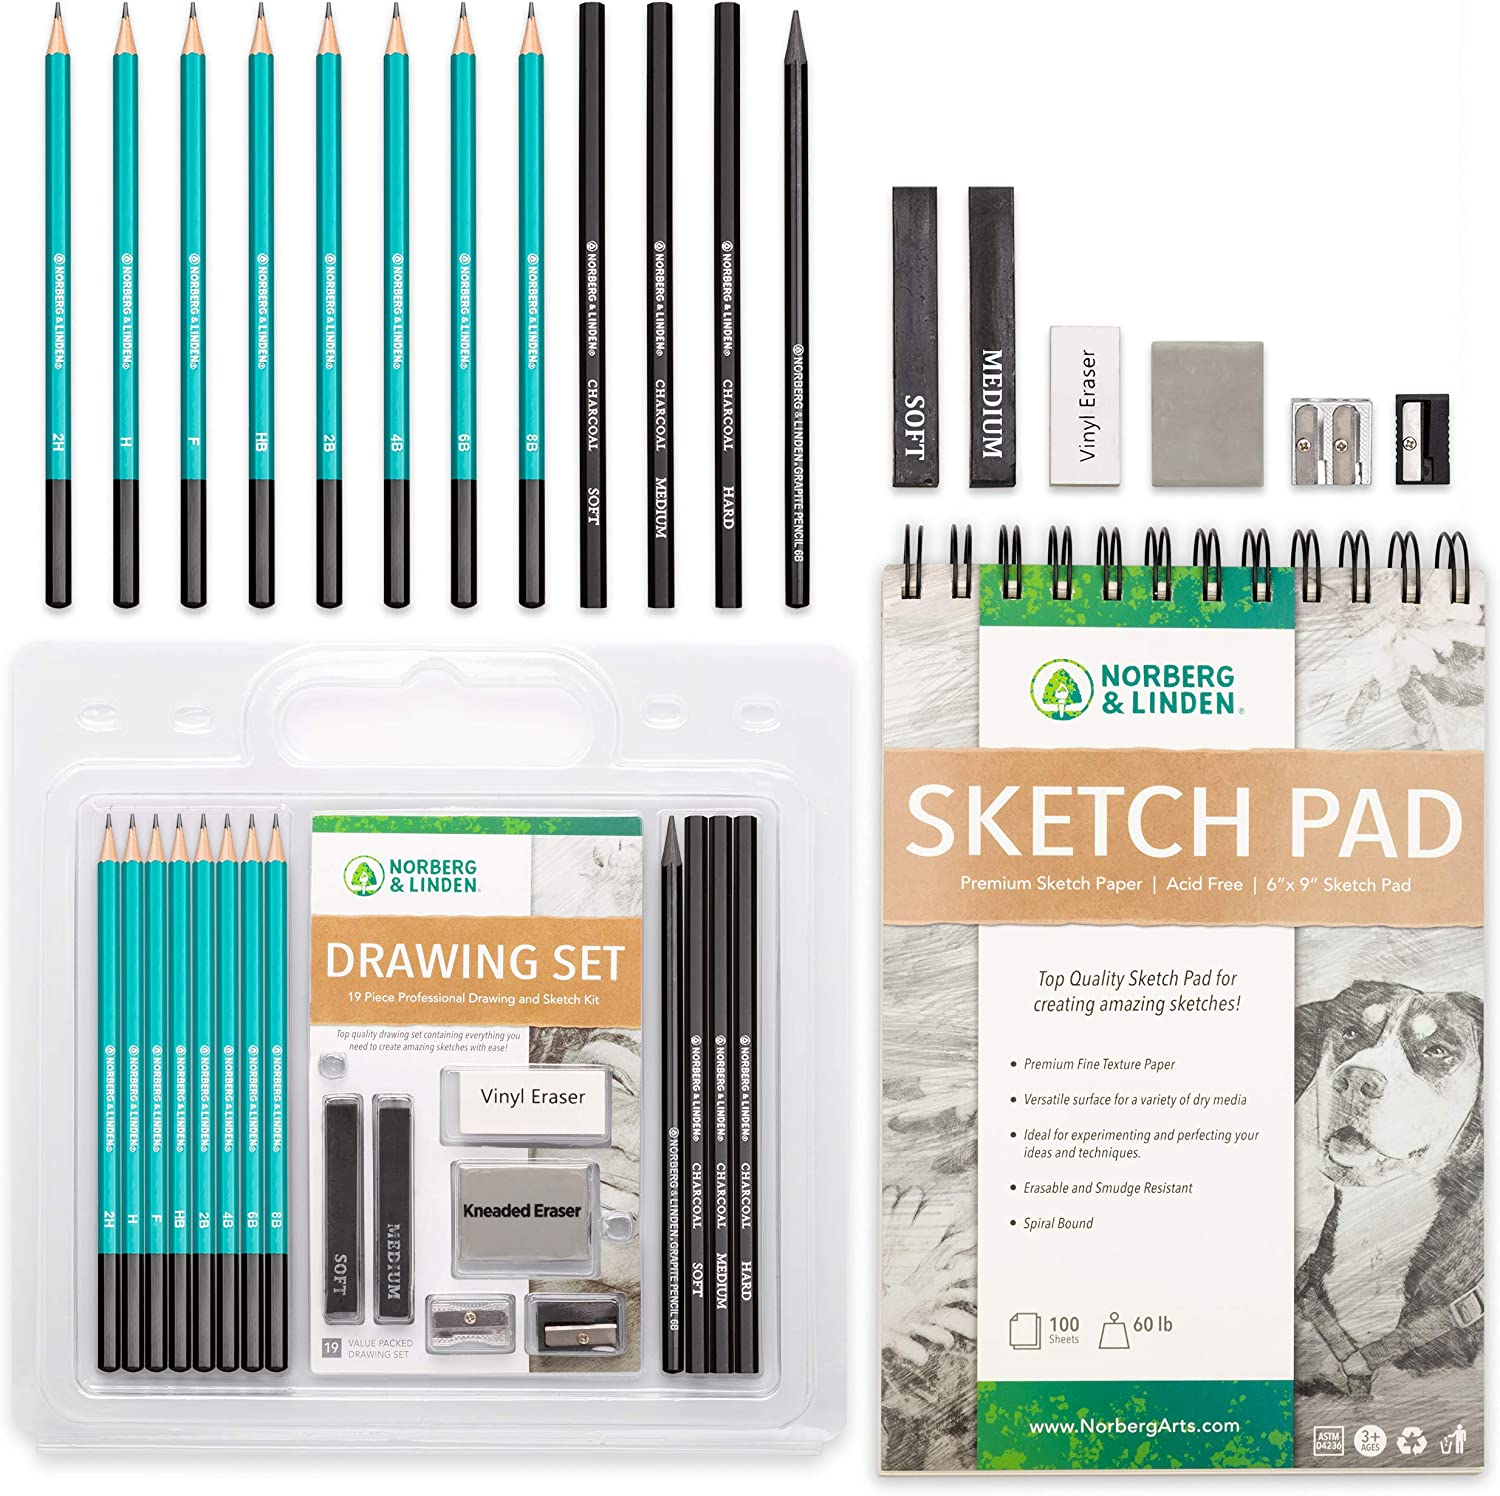 Norberg & Linden Drawing Set - Sketching and Charcoal Pencils - 100 Page Drawing Pad, Kneaded Eraser. Art Kit and Supplies for Kids, Teens and Adults, Sketch Set : Arts, Crafts & Sewing